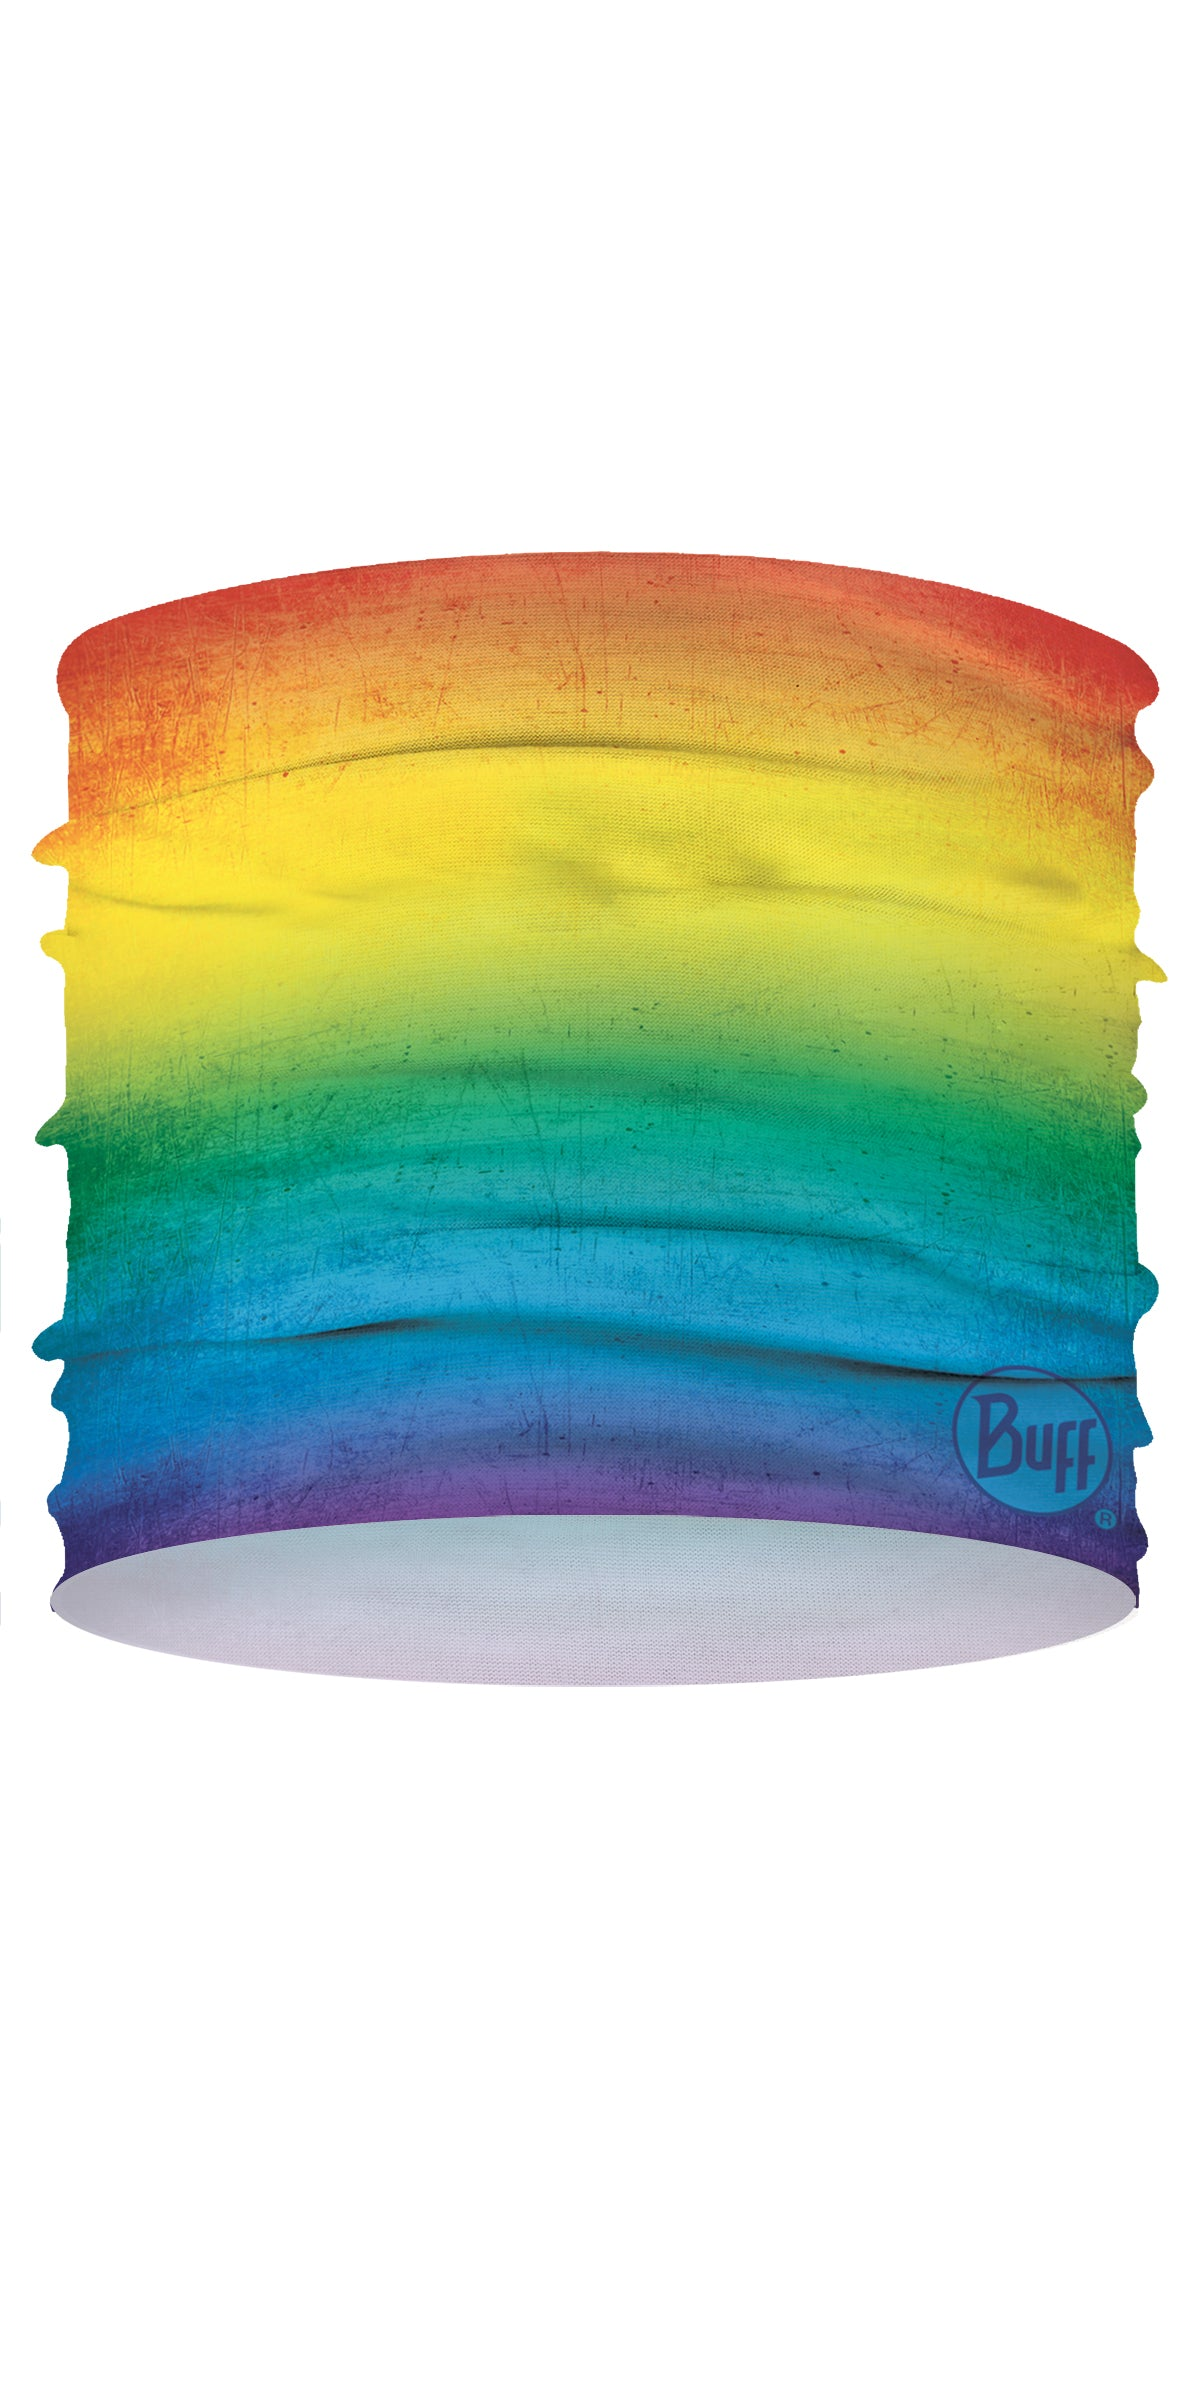 THE ORIGNAL BUFFS COOLNET UV+ MULTIFUNCTIONAL HEADBAND - PRIDE